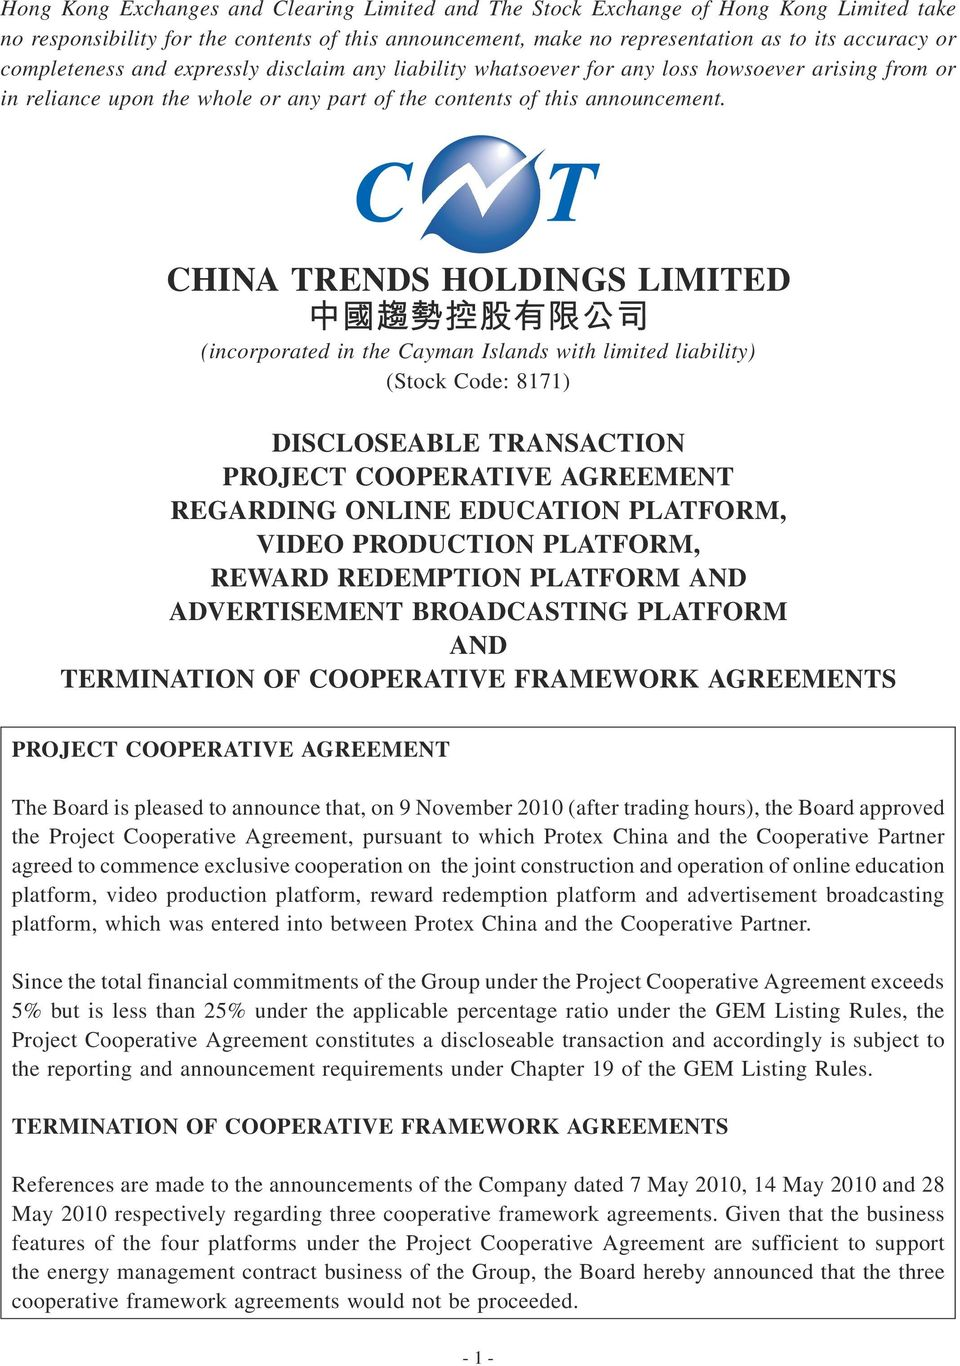 CHINA TRENDS HOLDINGS LIMITED (incorporated in the Cayman Islands with limited liability) (Stock Code: 8171) DISCLOSEABLE TRANSACTION PROJECT COOPERATIVE AGREEMENT REGARDING ONLINE EDUCATION